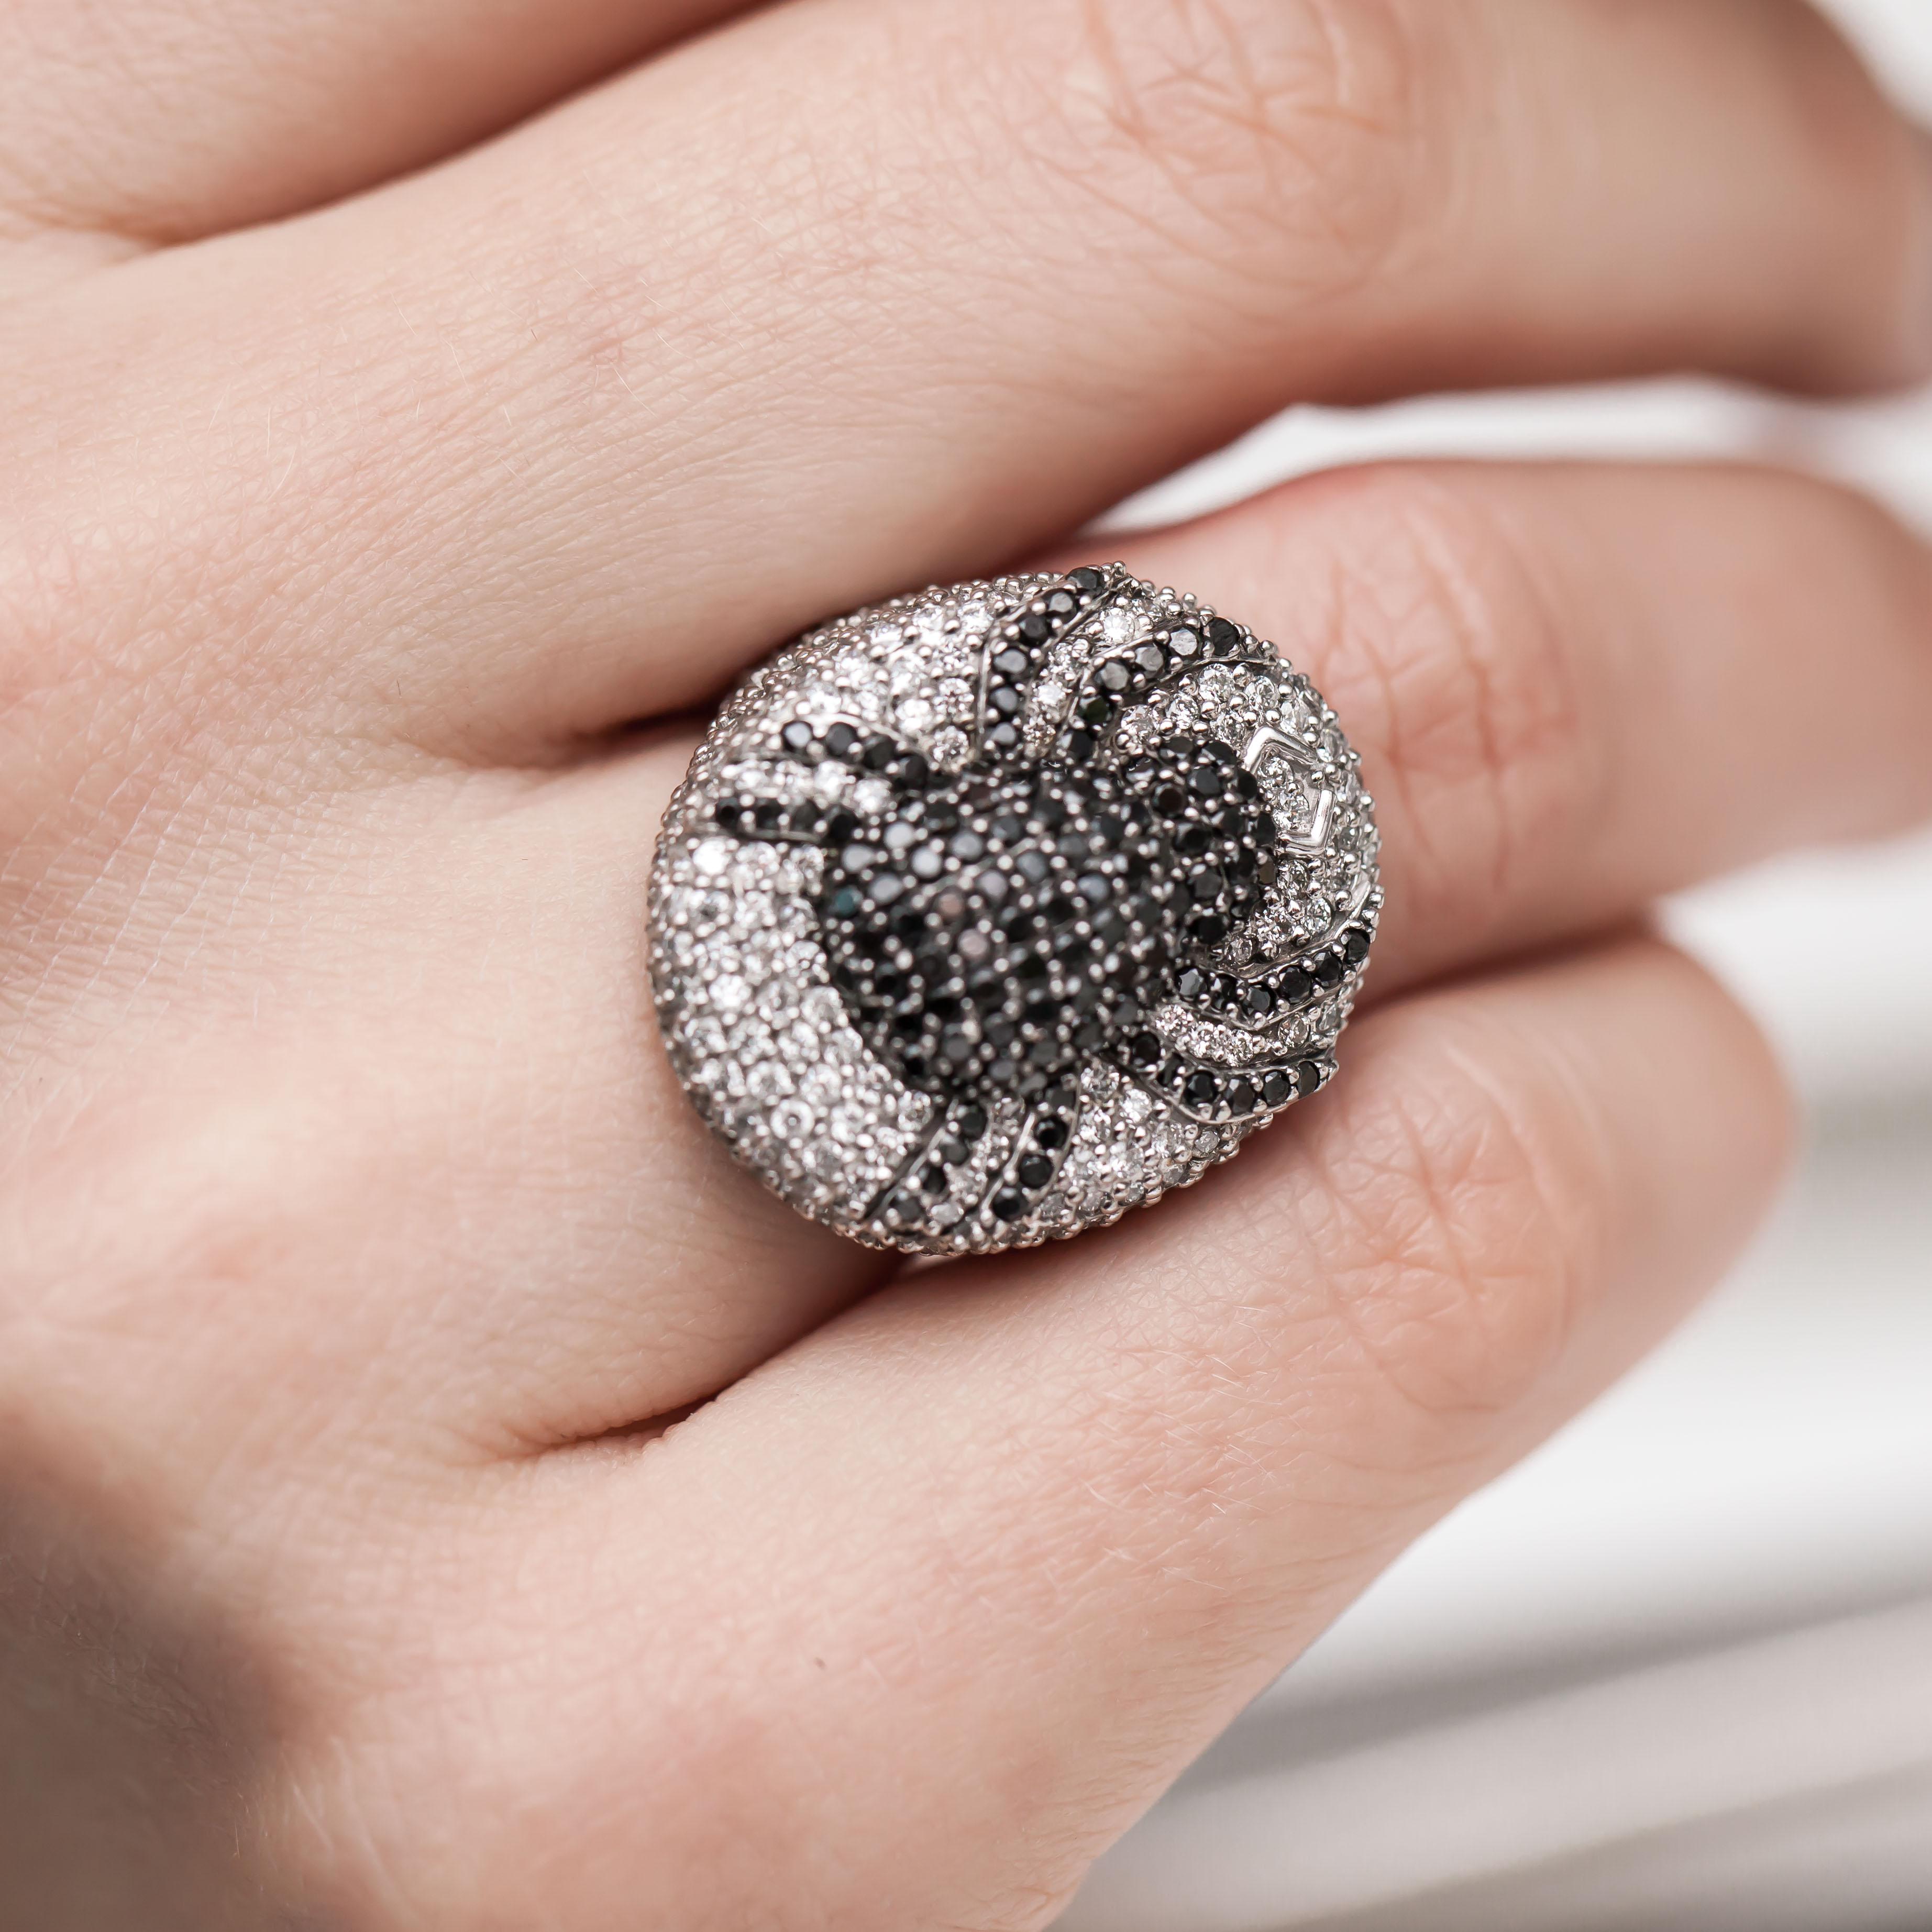 JANE BERG BLACK CHARLOTTE RING REVIEW